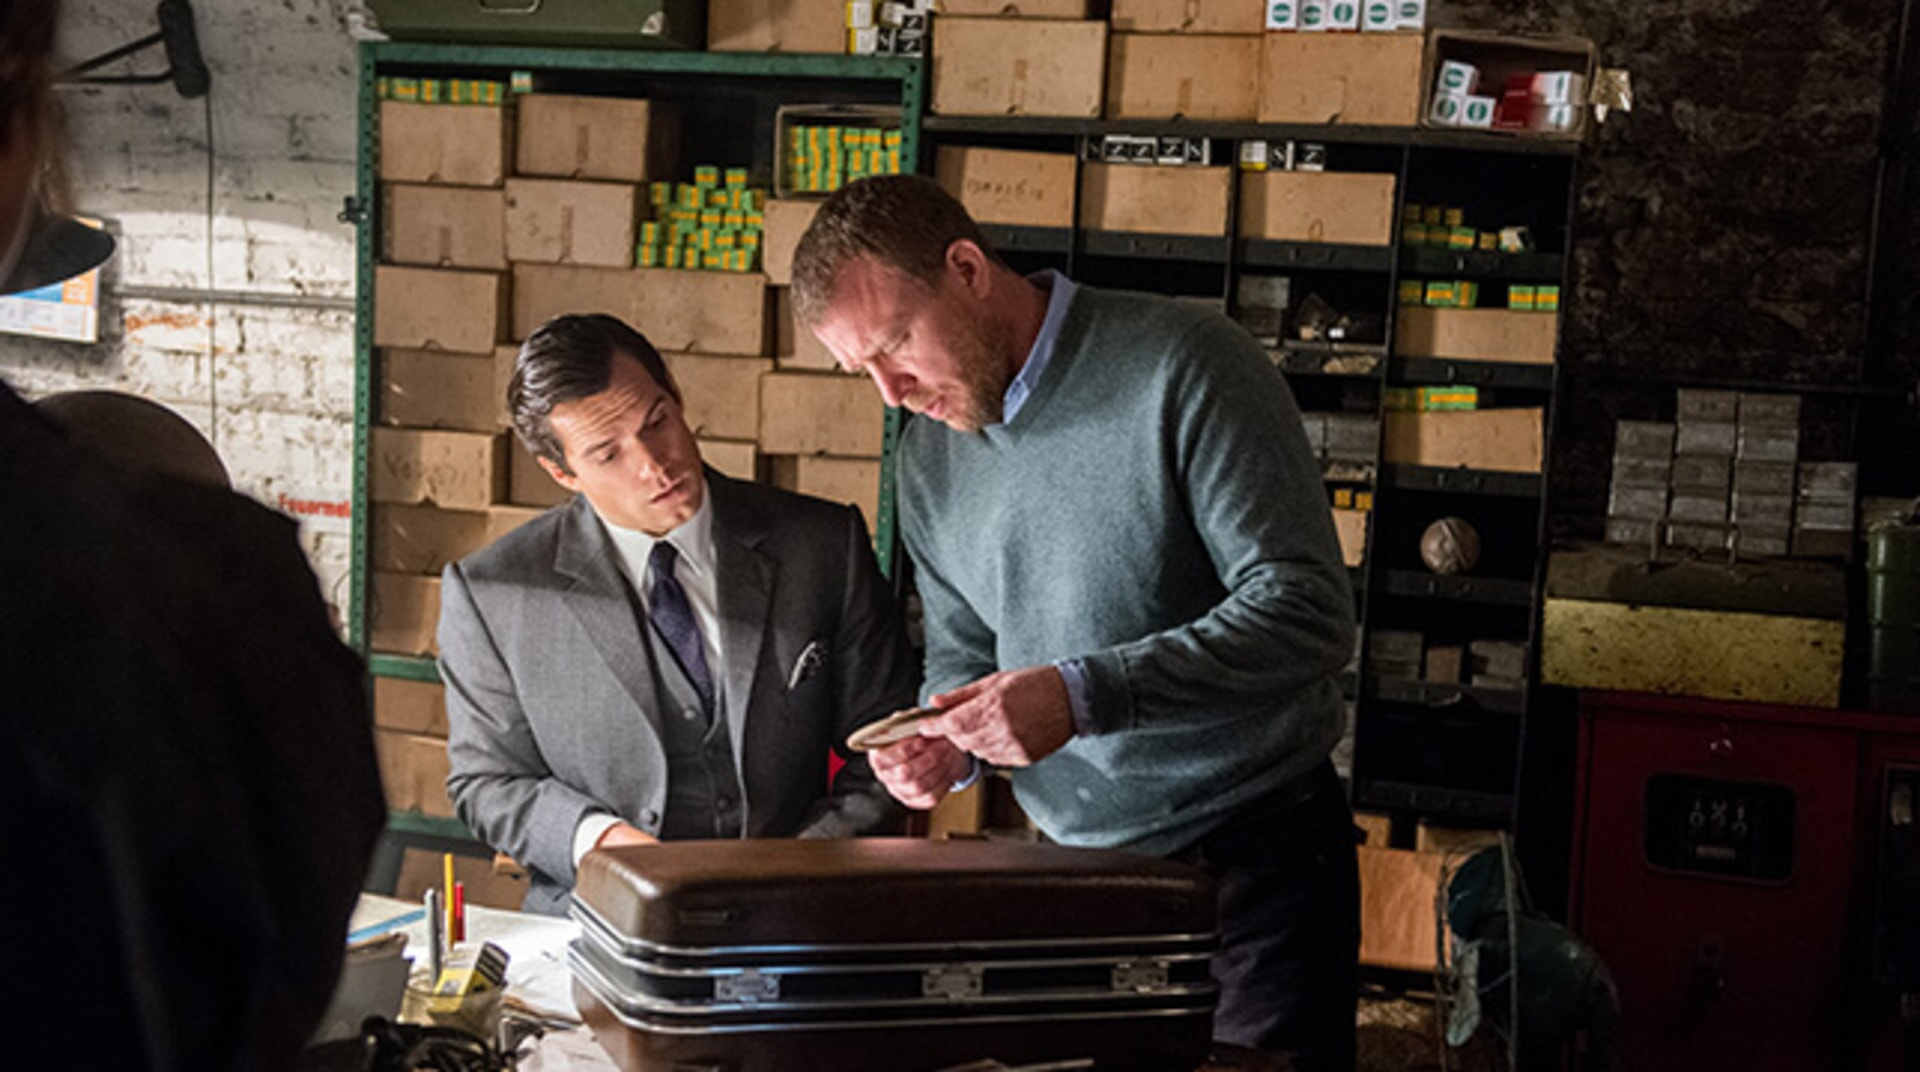 The Man From U.N.C.L.E. - Image 37